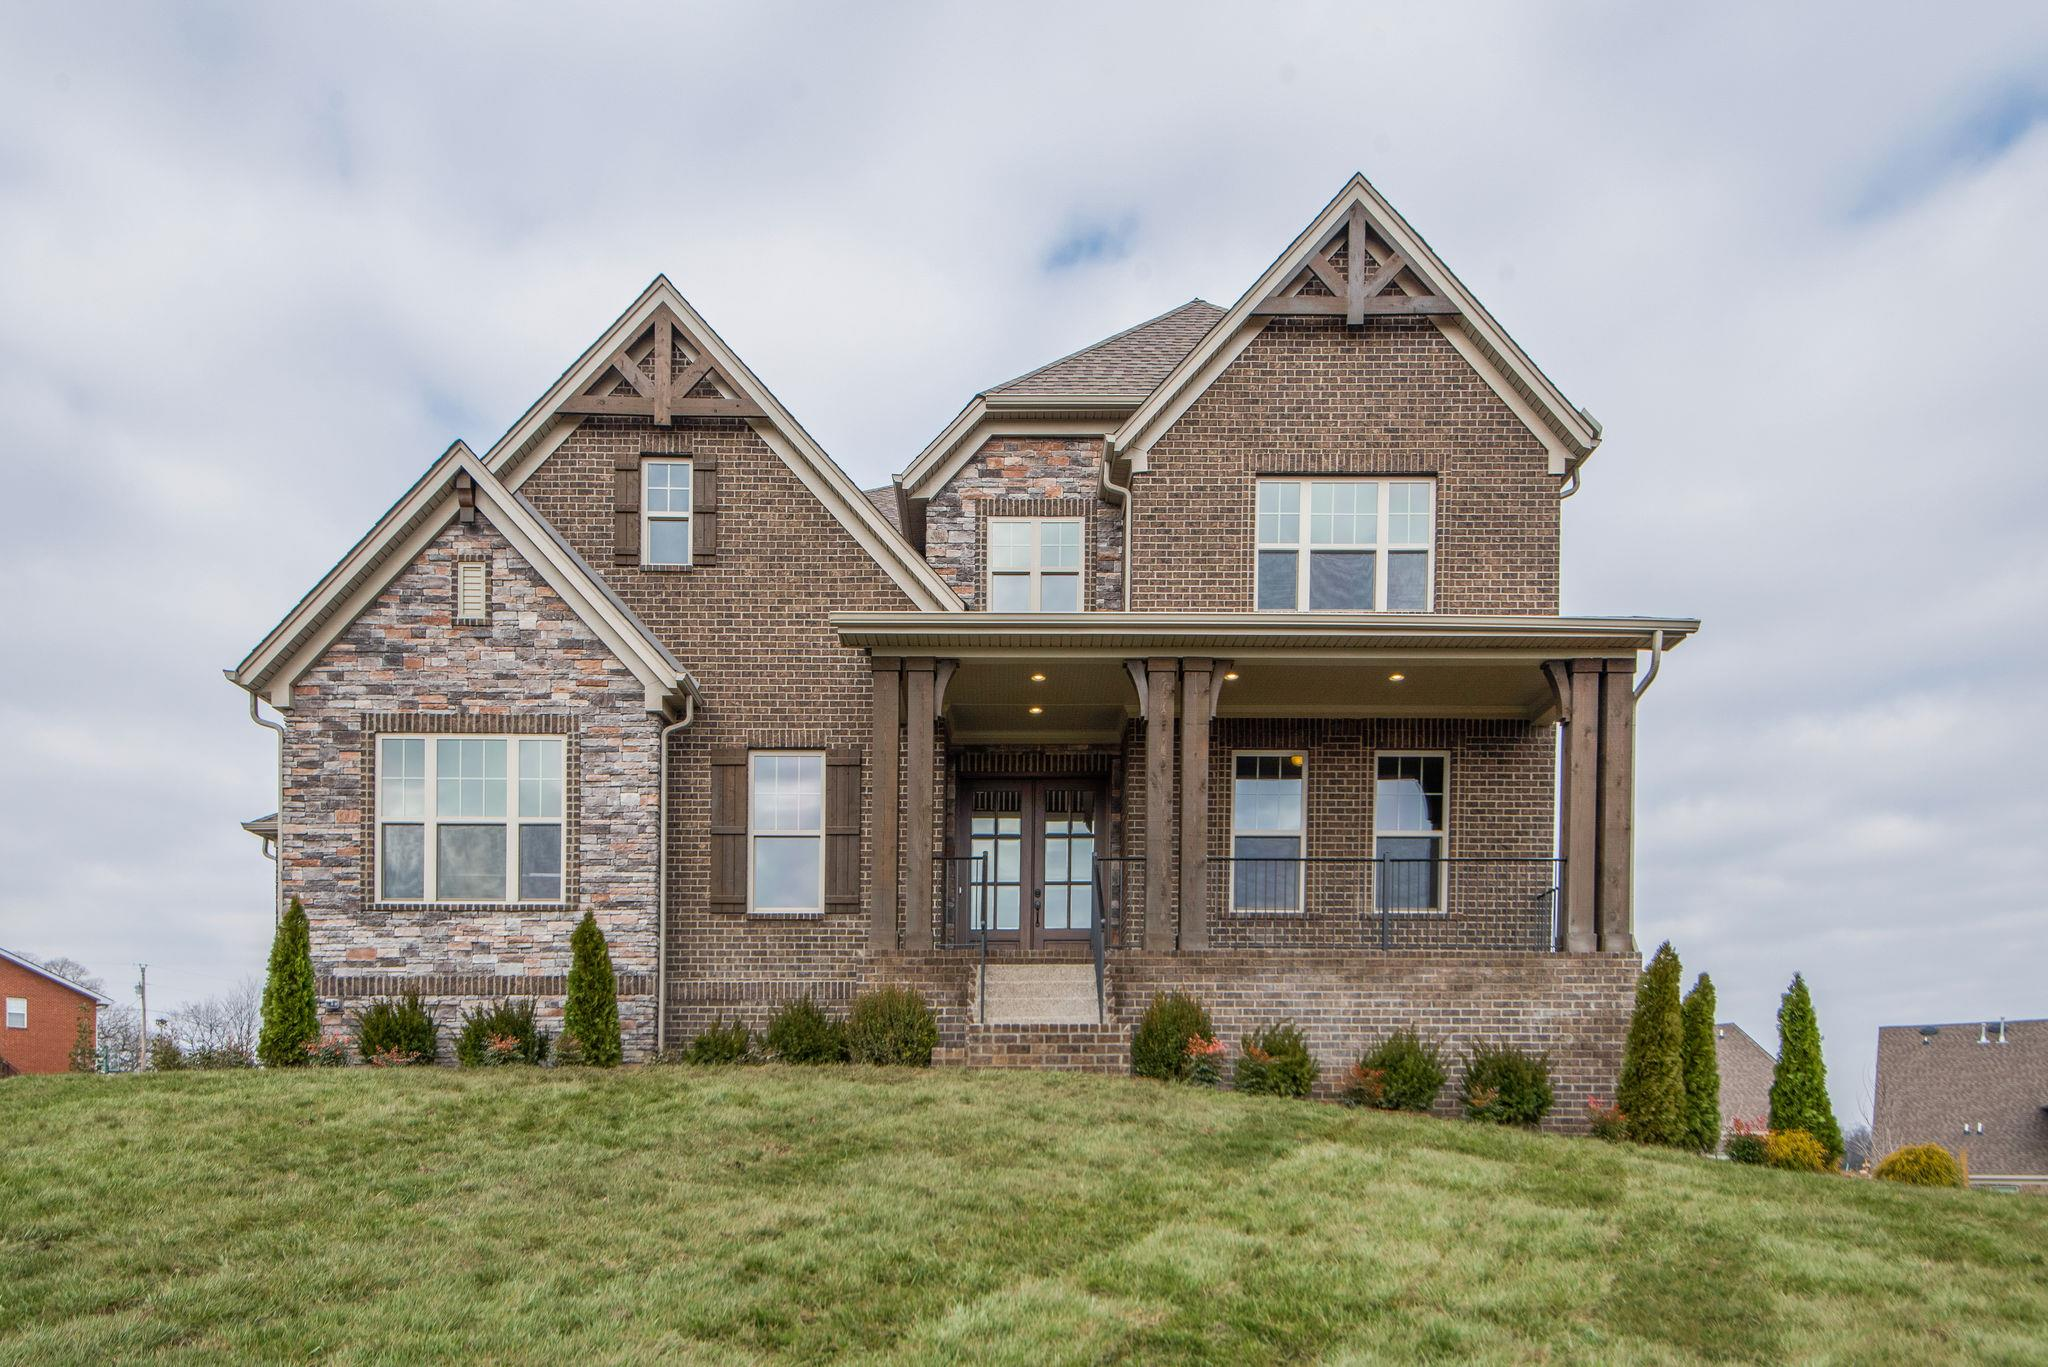 988 Quinn Terrace, Lot 4, Nolensville, Tennessee